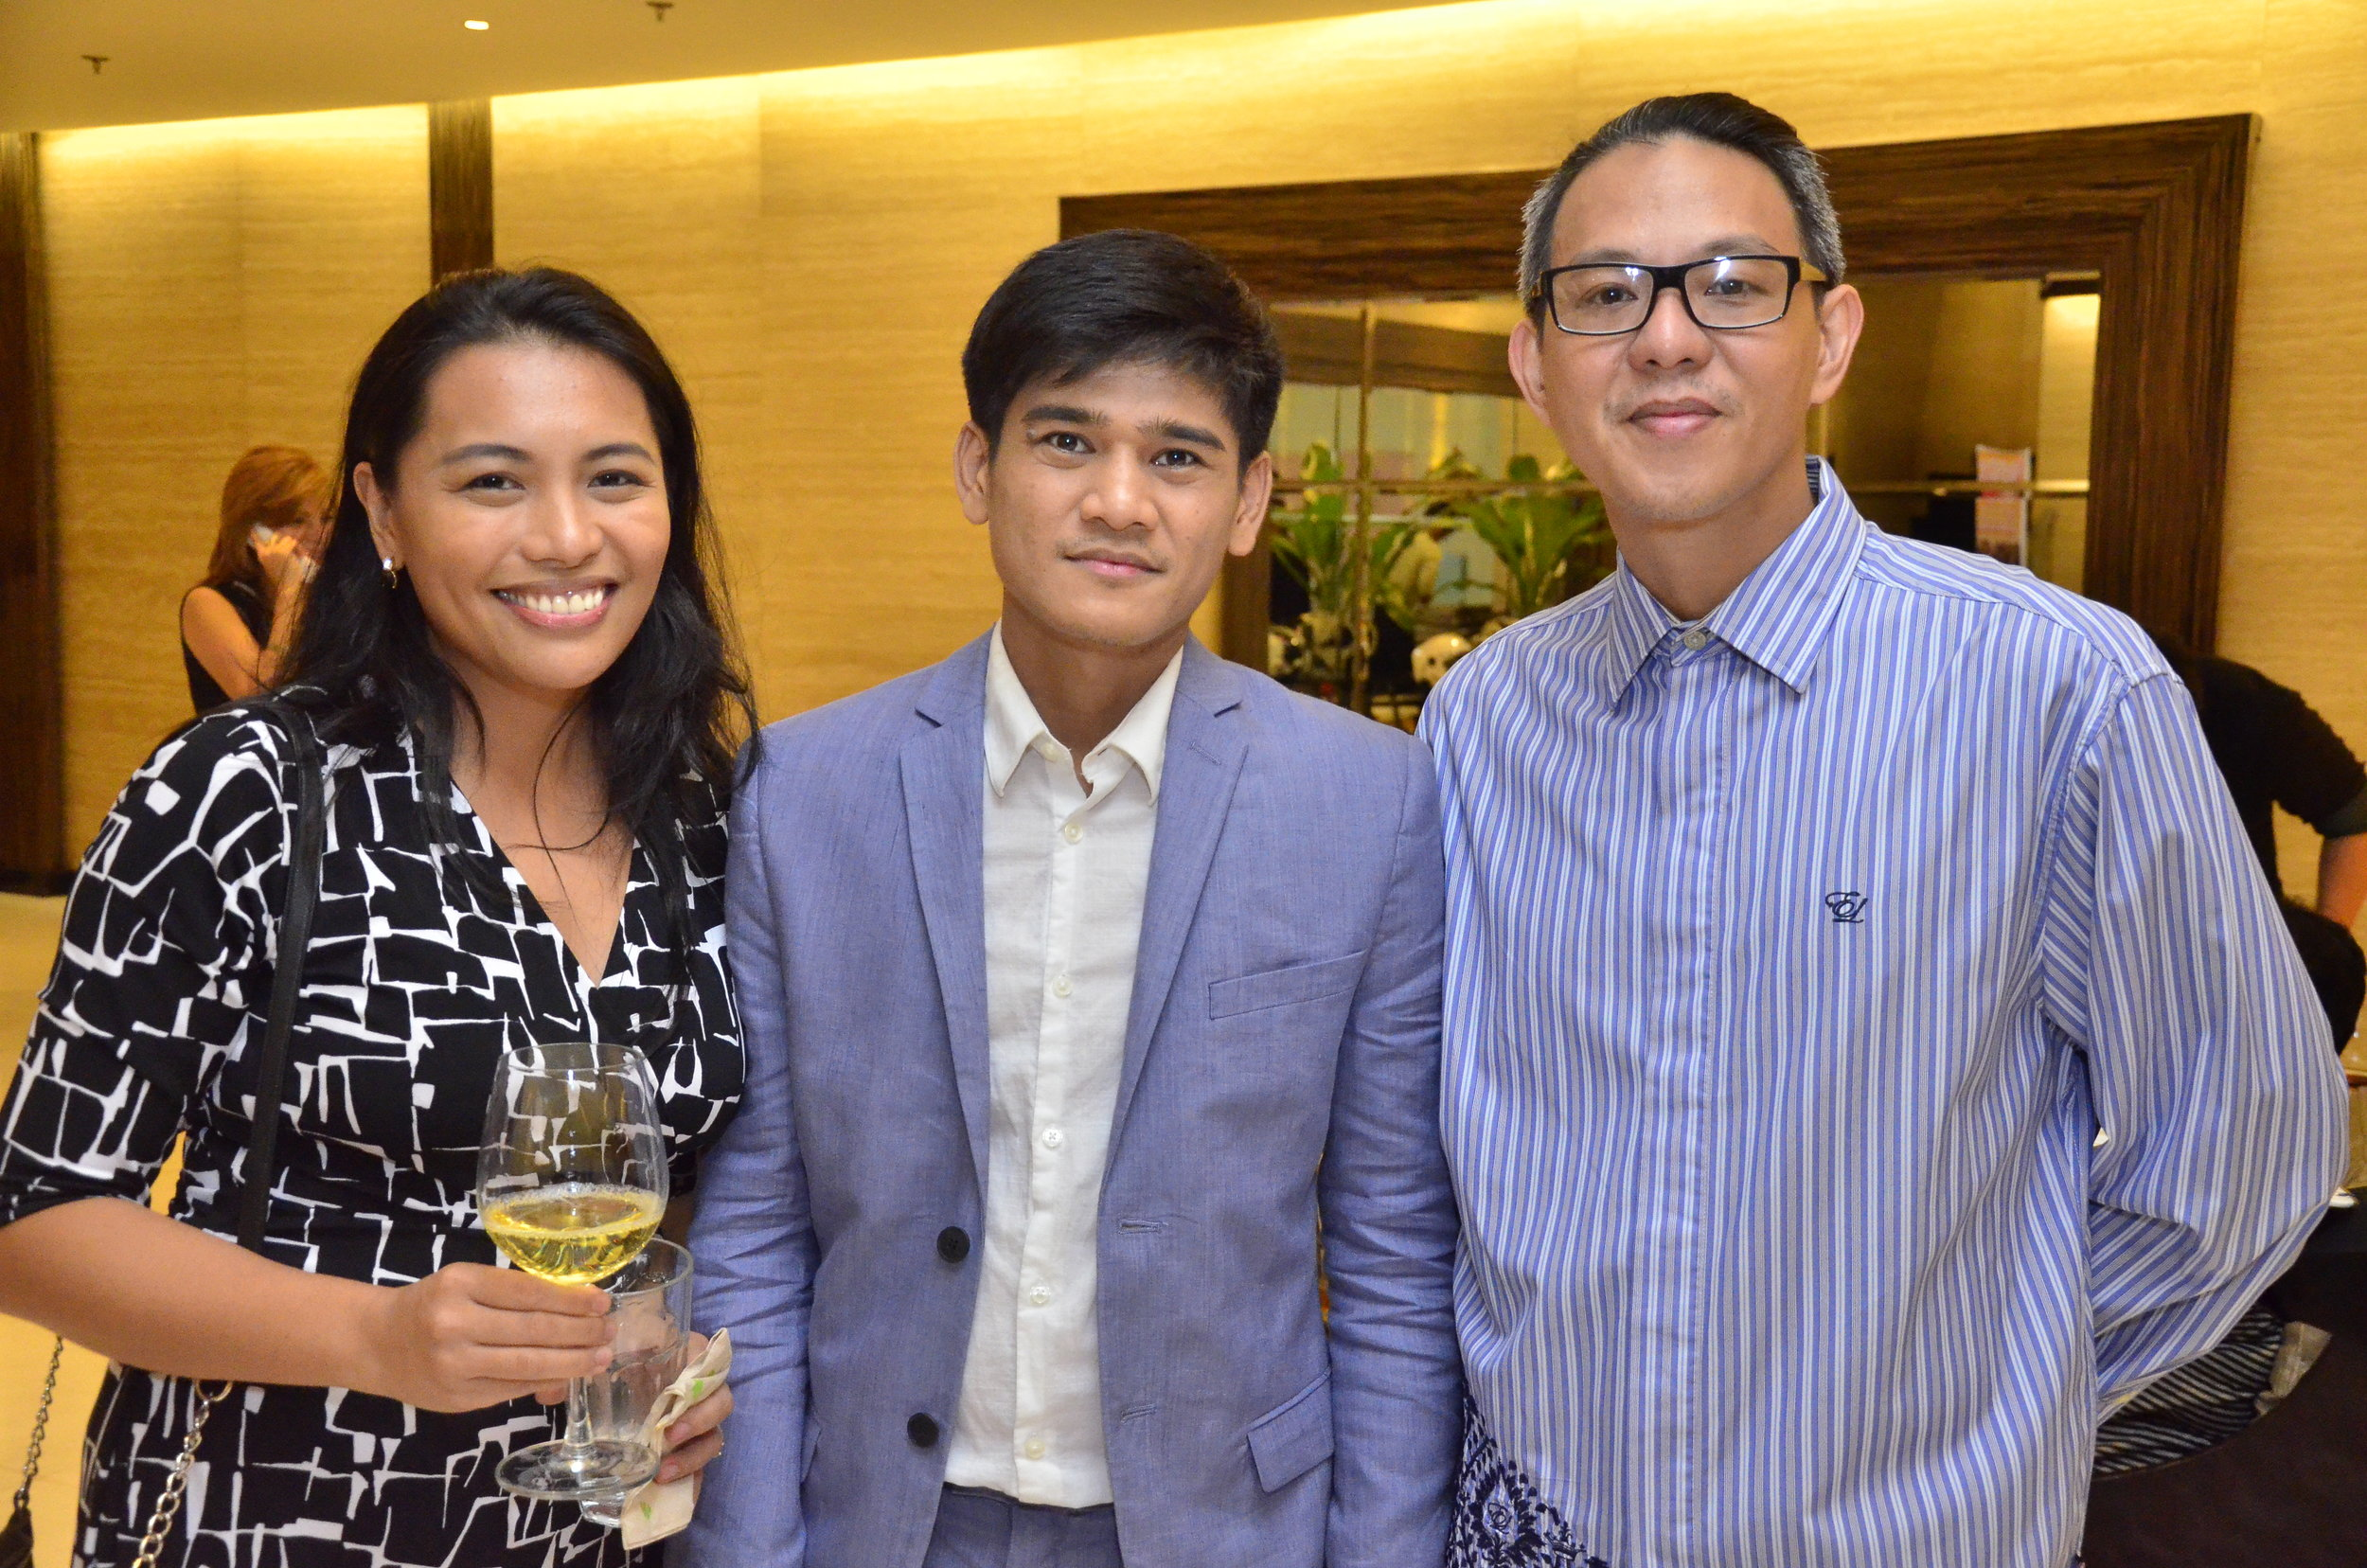 With Guest of Honor Banaue Miclat-Janssen and Paul Morales